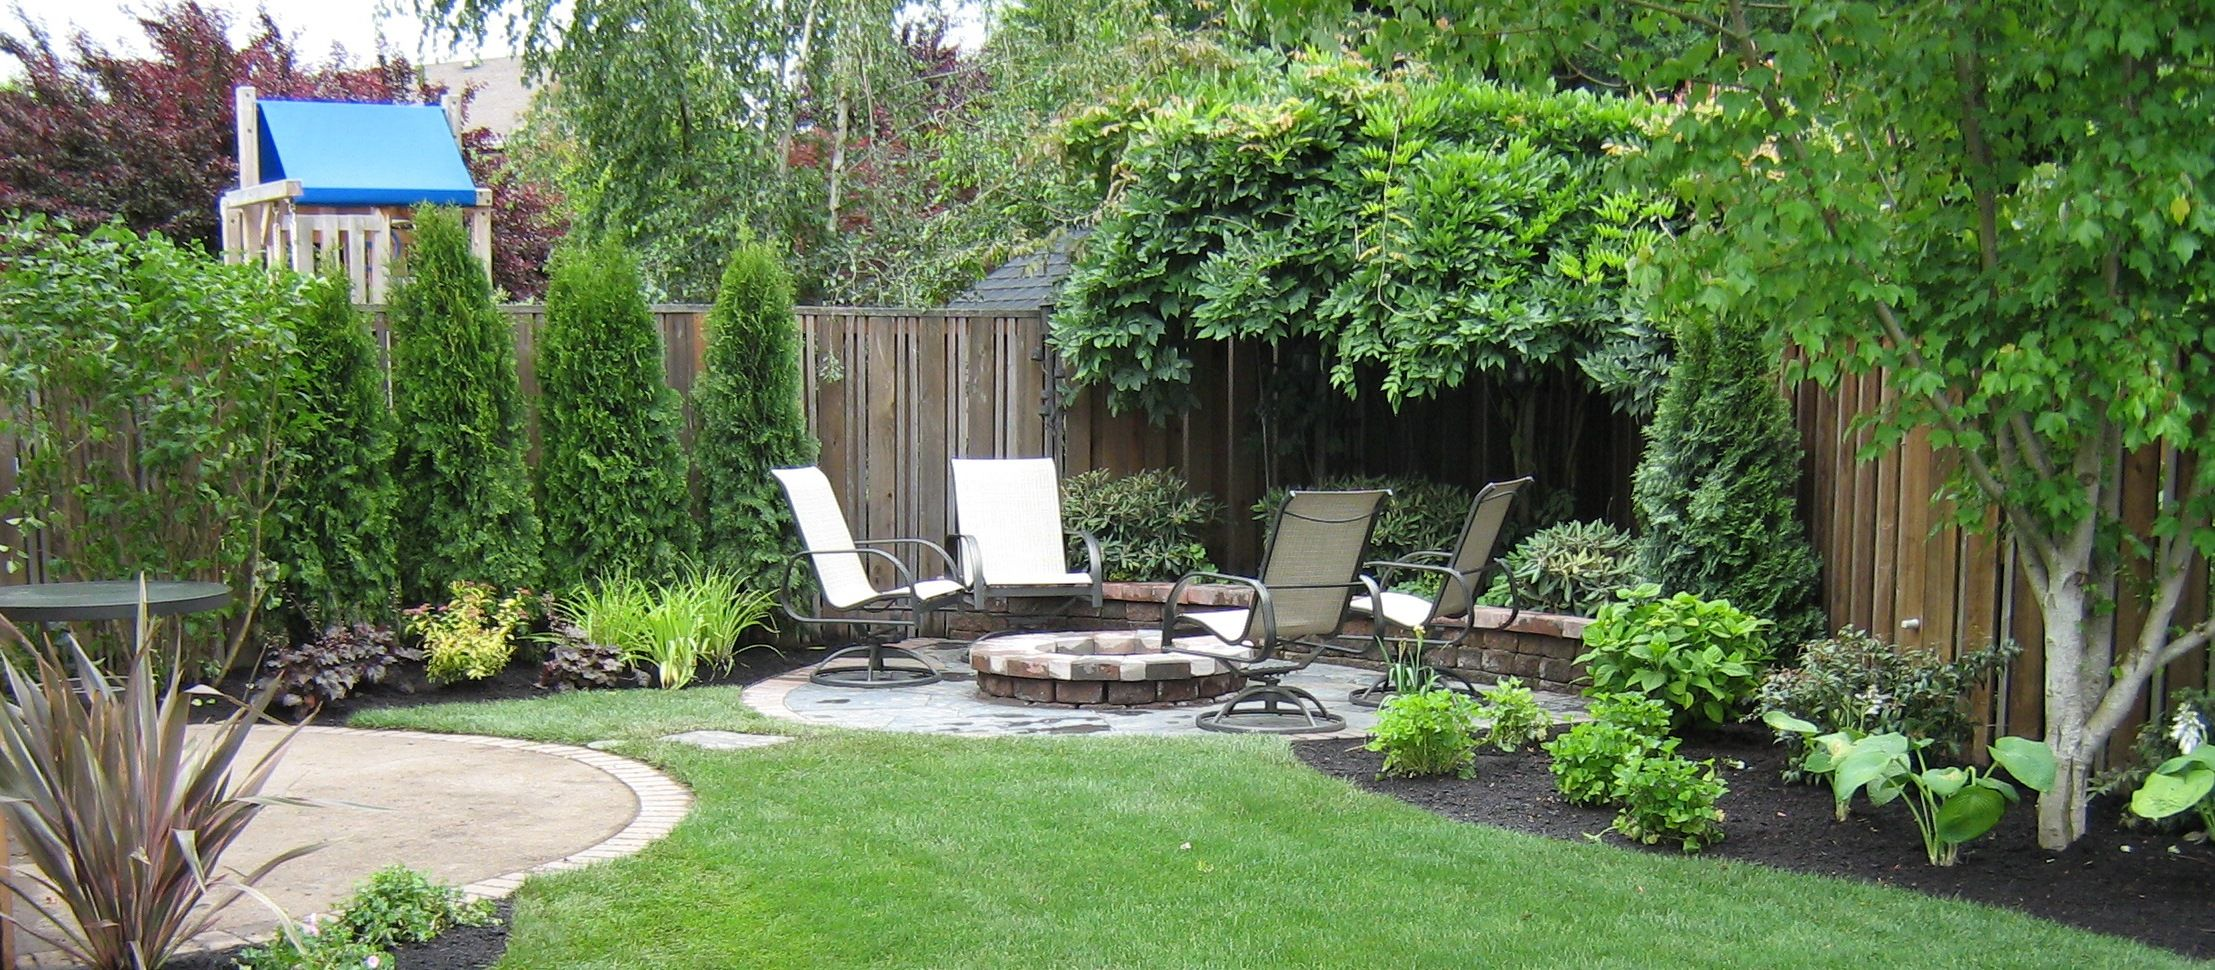 Pool Yard Designs Pool Ideas Small Yard Ideas Small Backyard